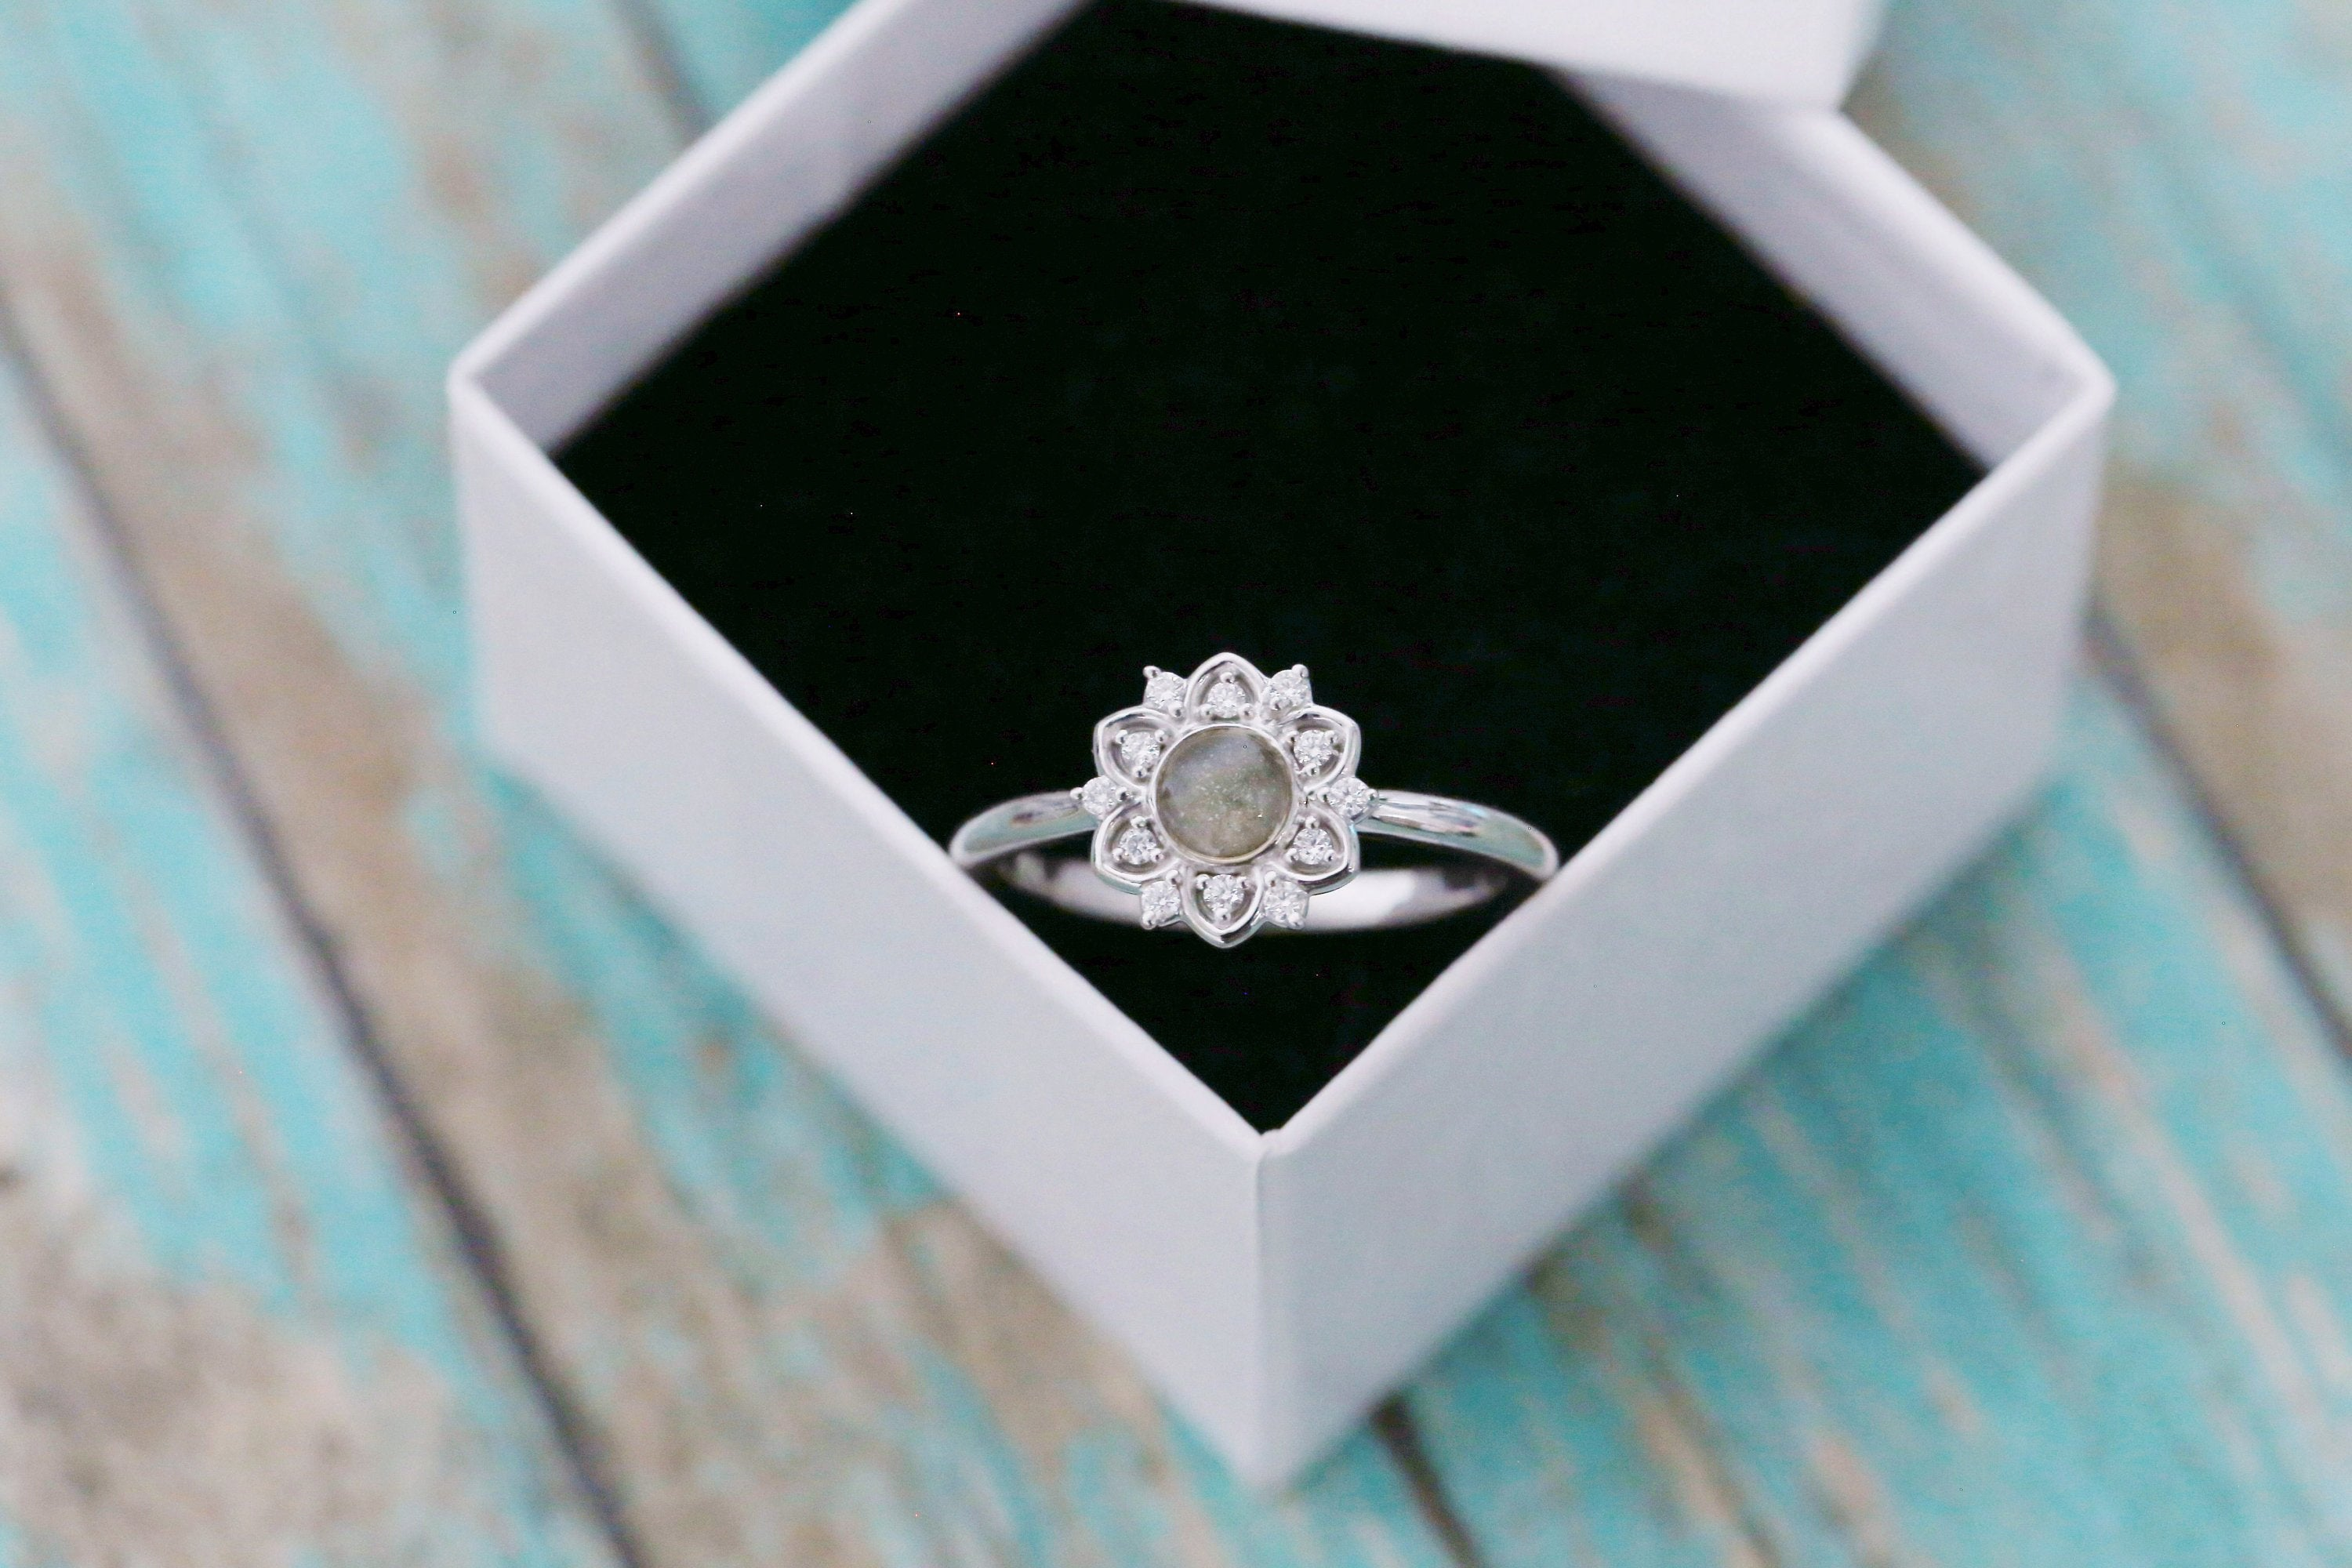 Sterling Silver Cremation Ring - Diamond Flower Ring - Cremation Jewelry - Ash Ring - Ash Jewelry - Urn Ring -Urn  Pet Loss